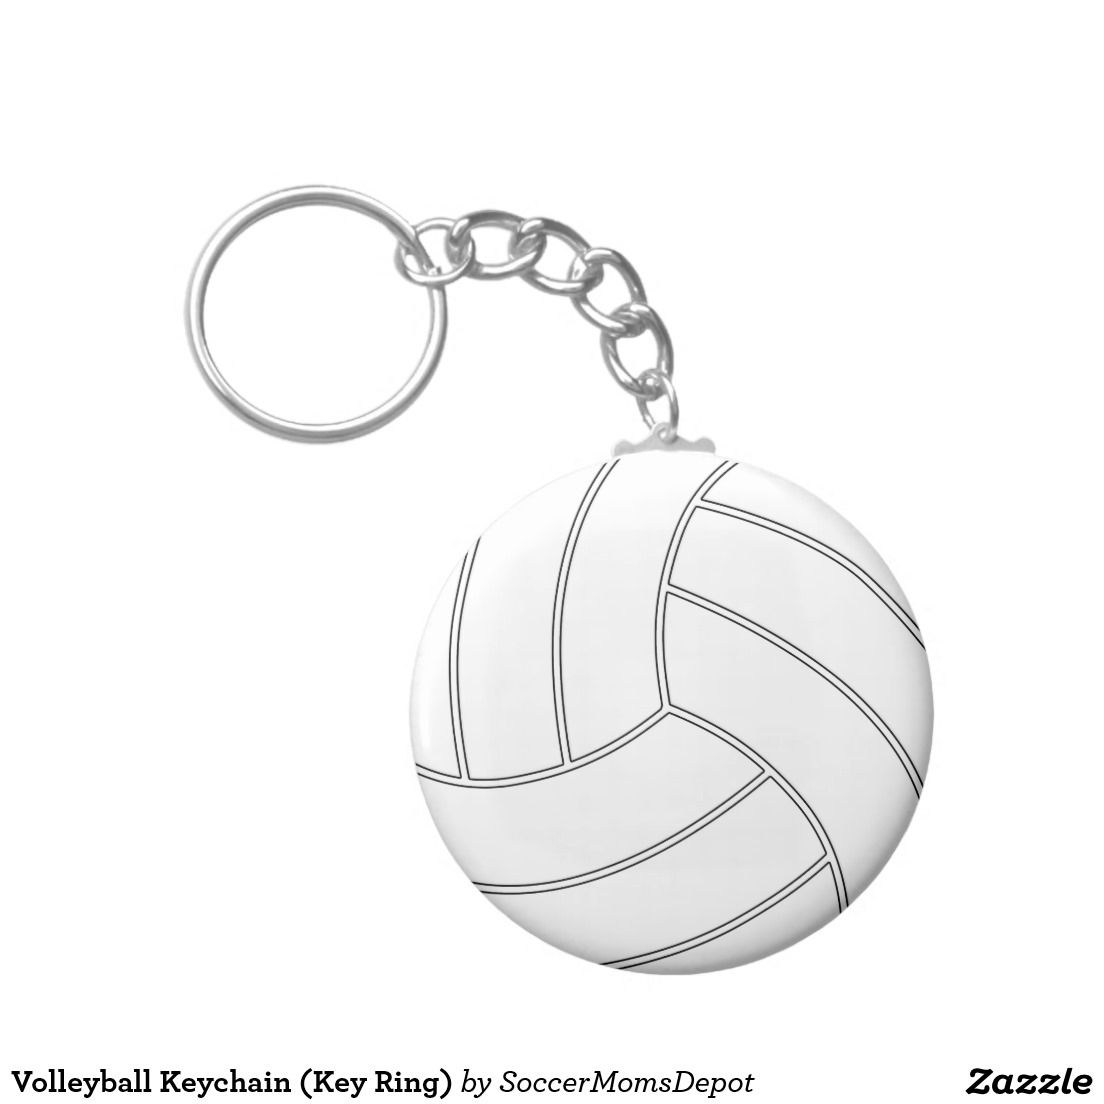 Volleyball Key Chain Keyring I Simple Affordable And Cute Team Gift Party Favor Or Stocking Stuffer Idea You Volleyball Team Gifts Volleyball Team Gifts